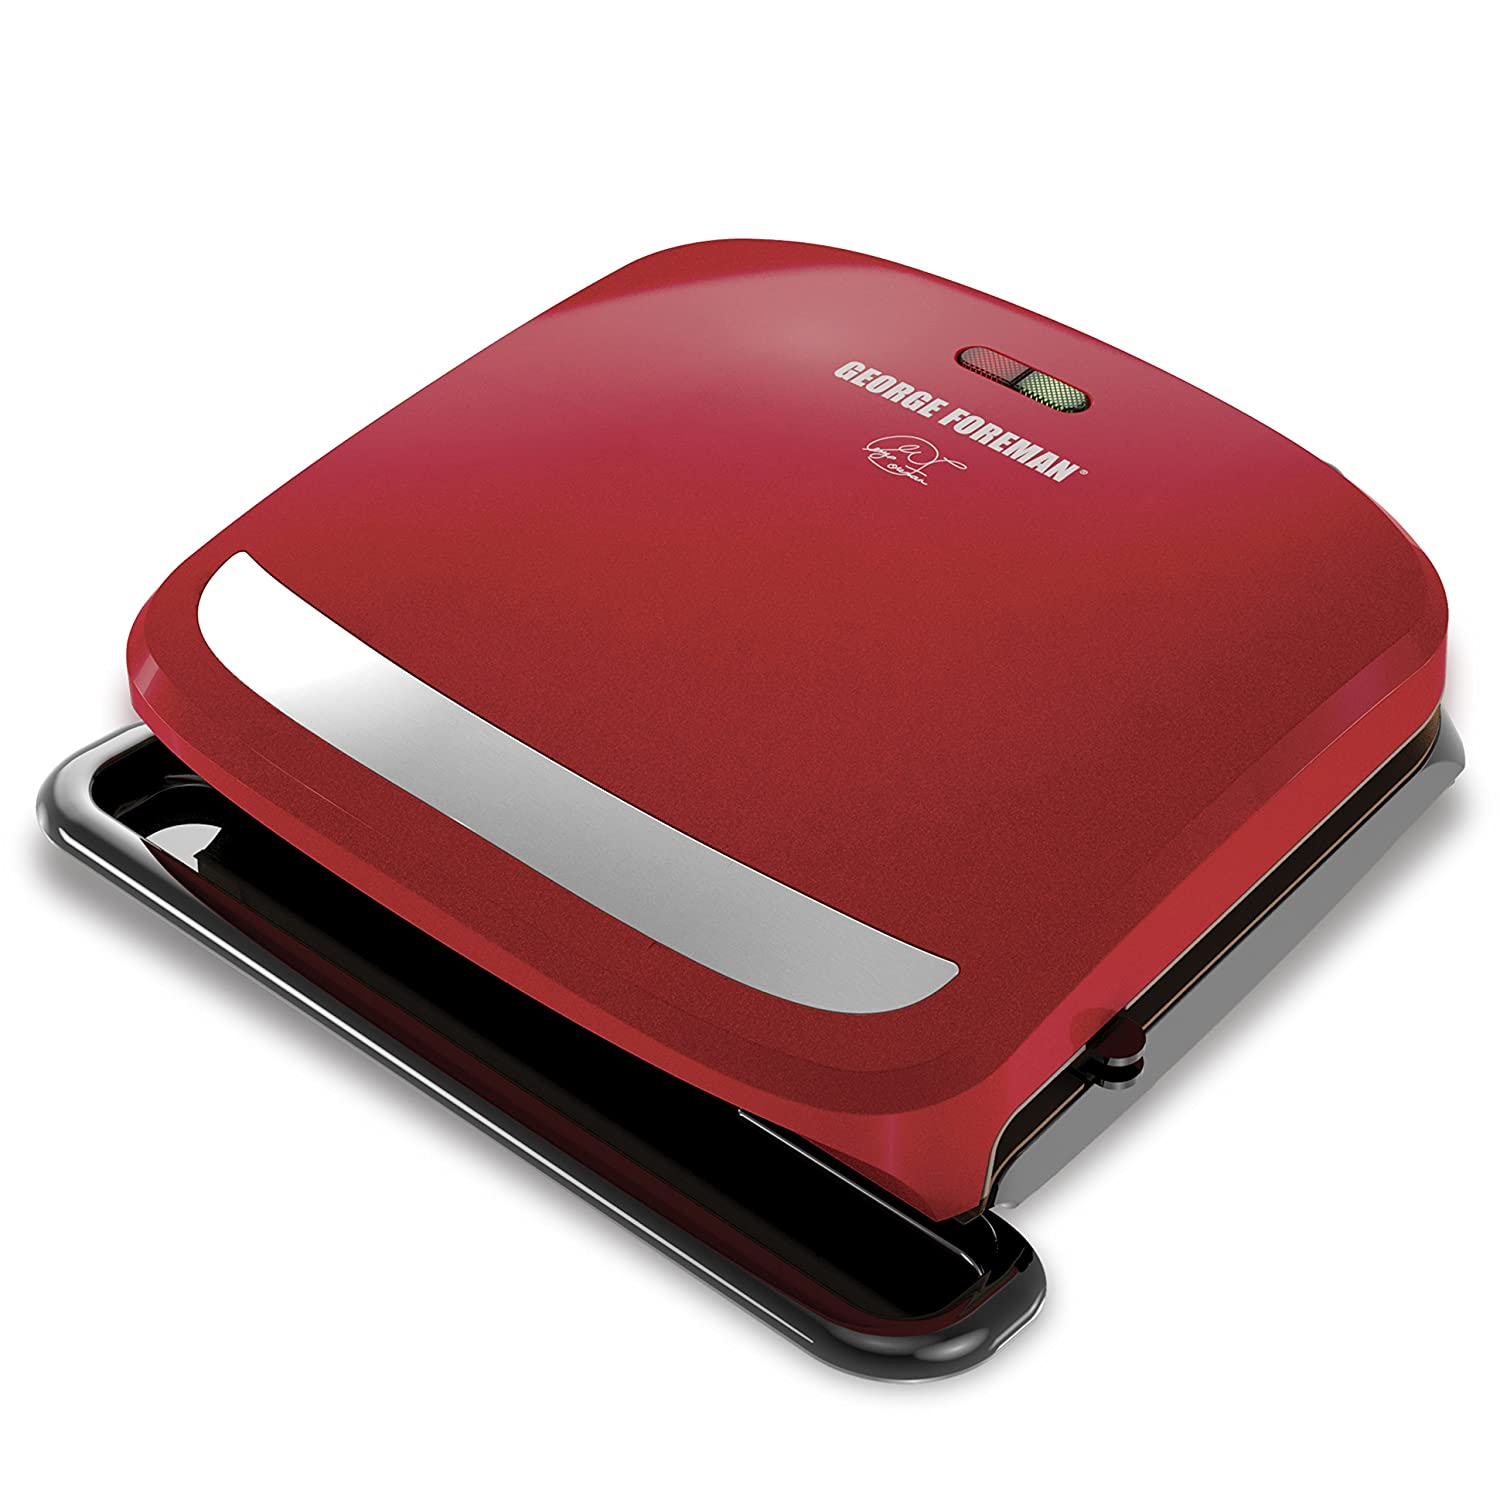 George Foreman 4-Serving Removable Plate Grill and Panini Press, Red, GRP360R review